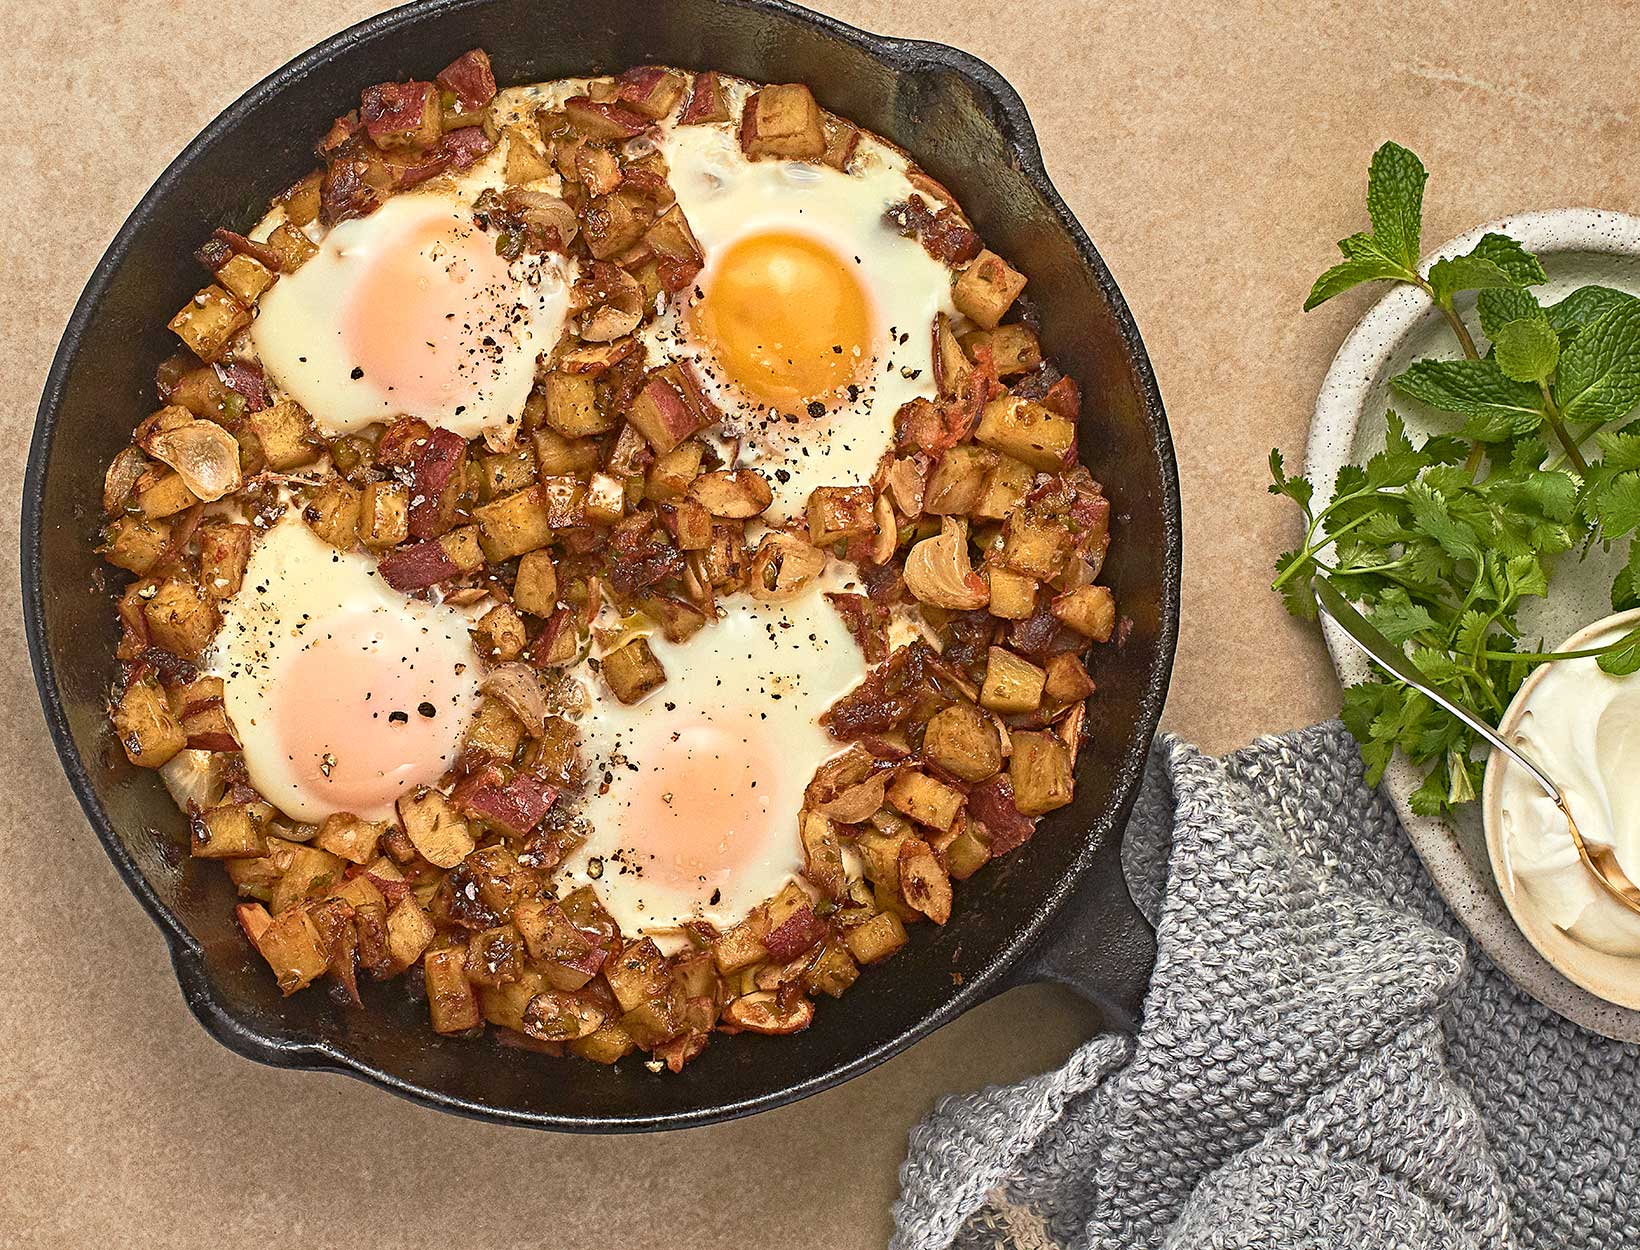 Skillet-Baked Eggs with Japanese Sweet Potato Hash